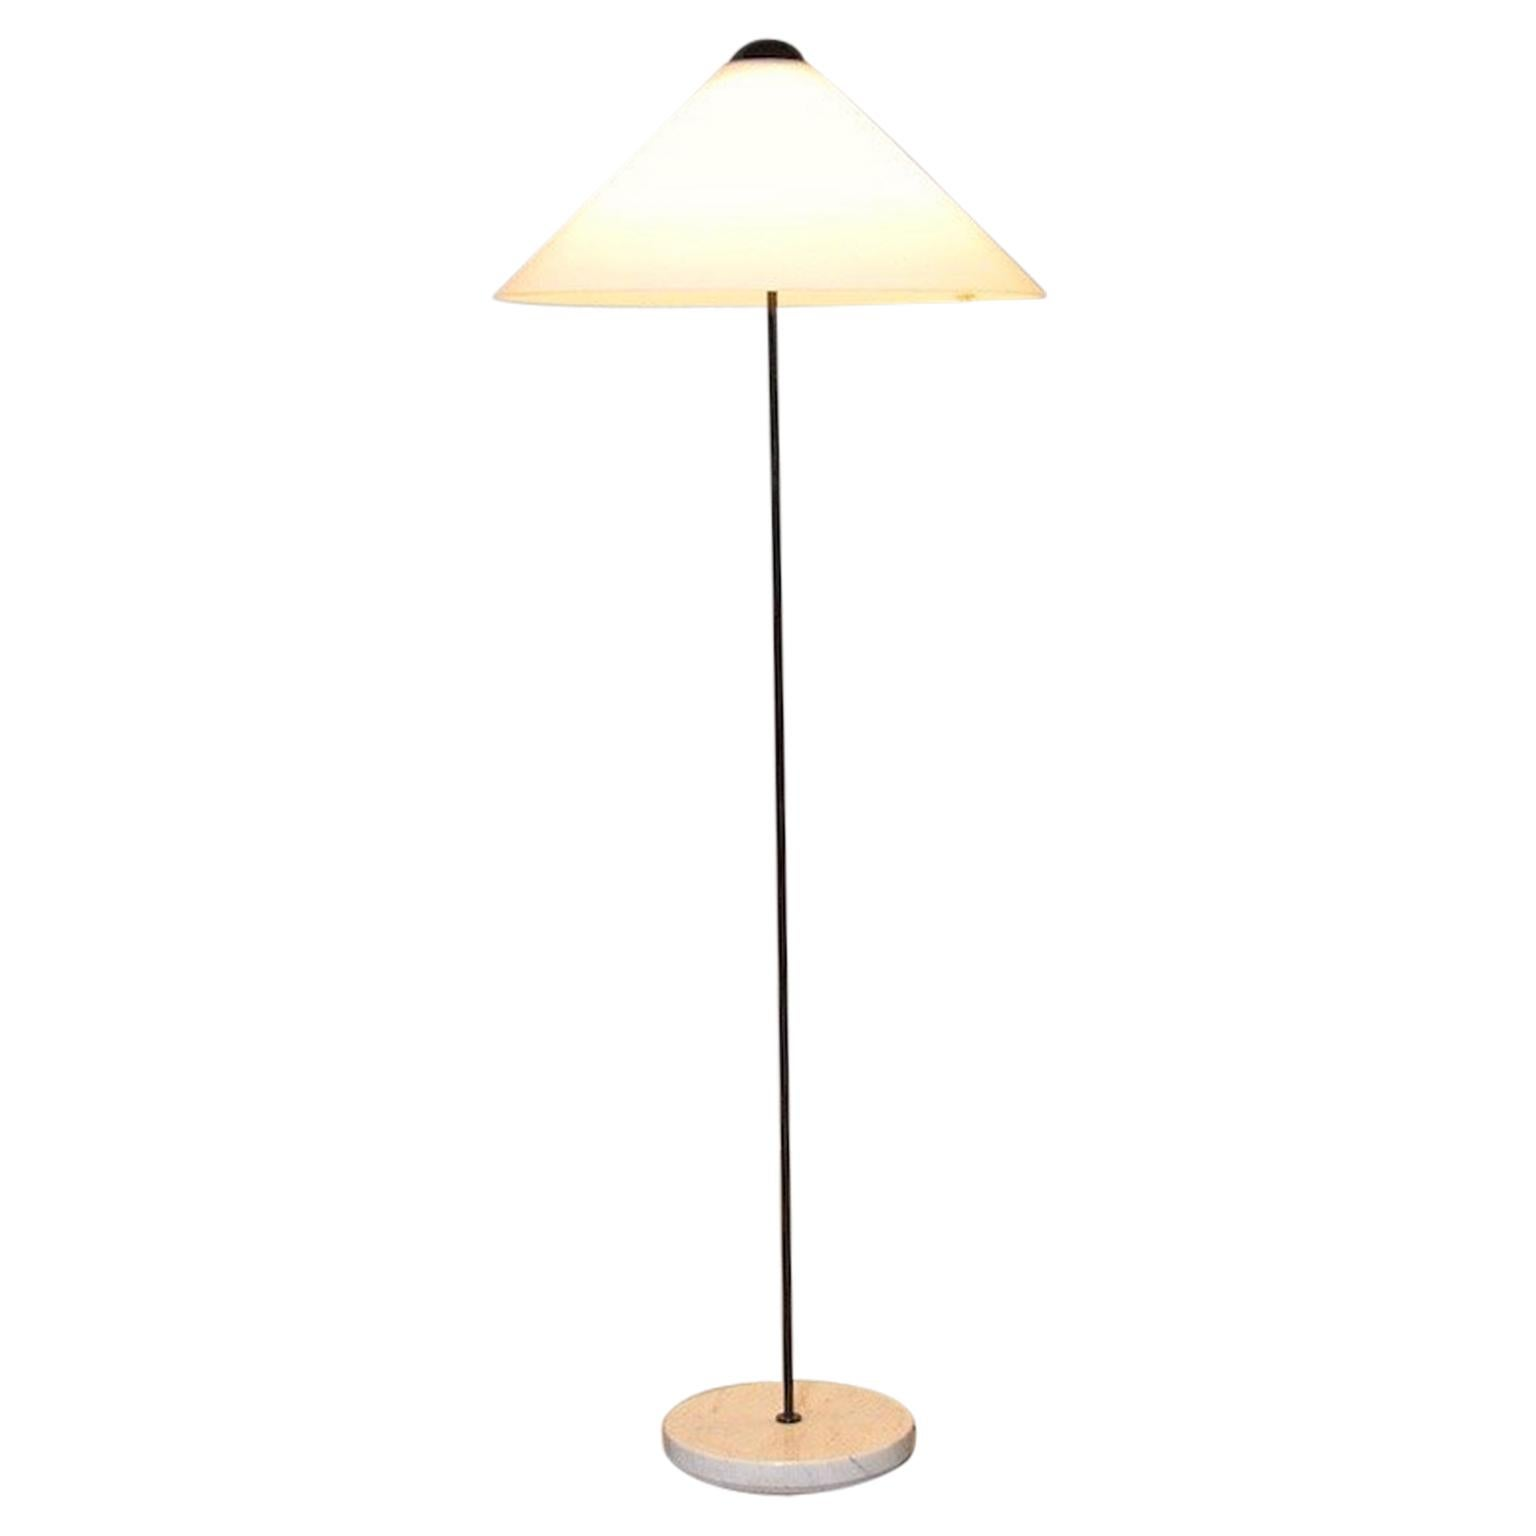 Snow Floor Lamp by Vico Magistretti for Oluce, Italy